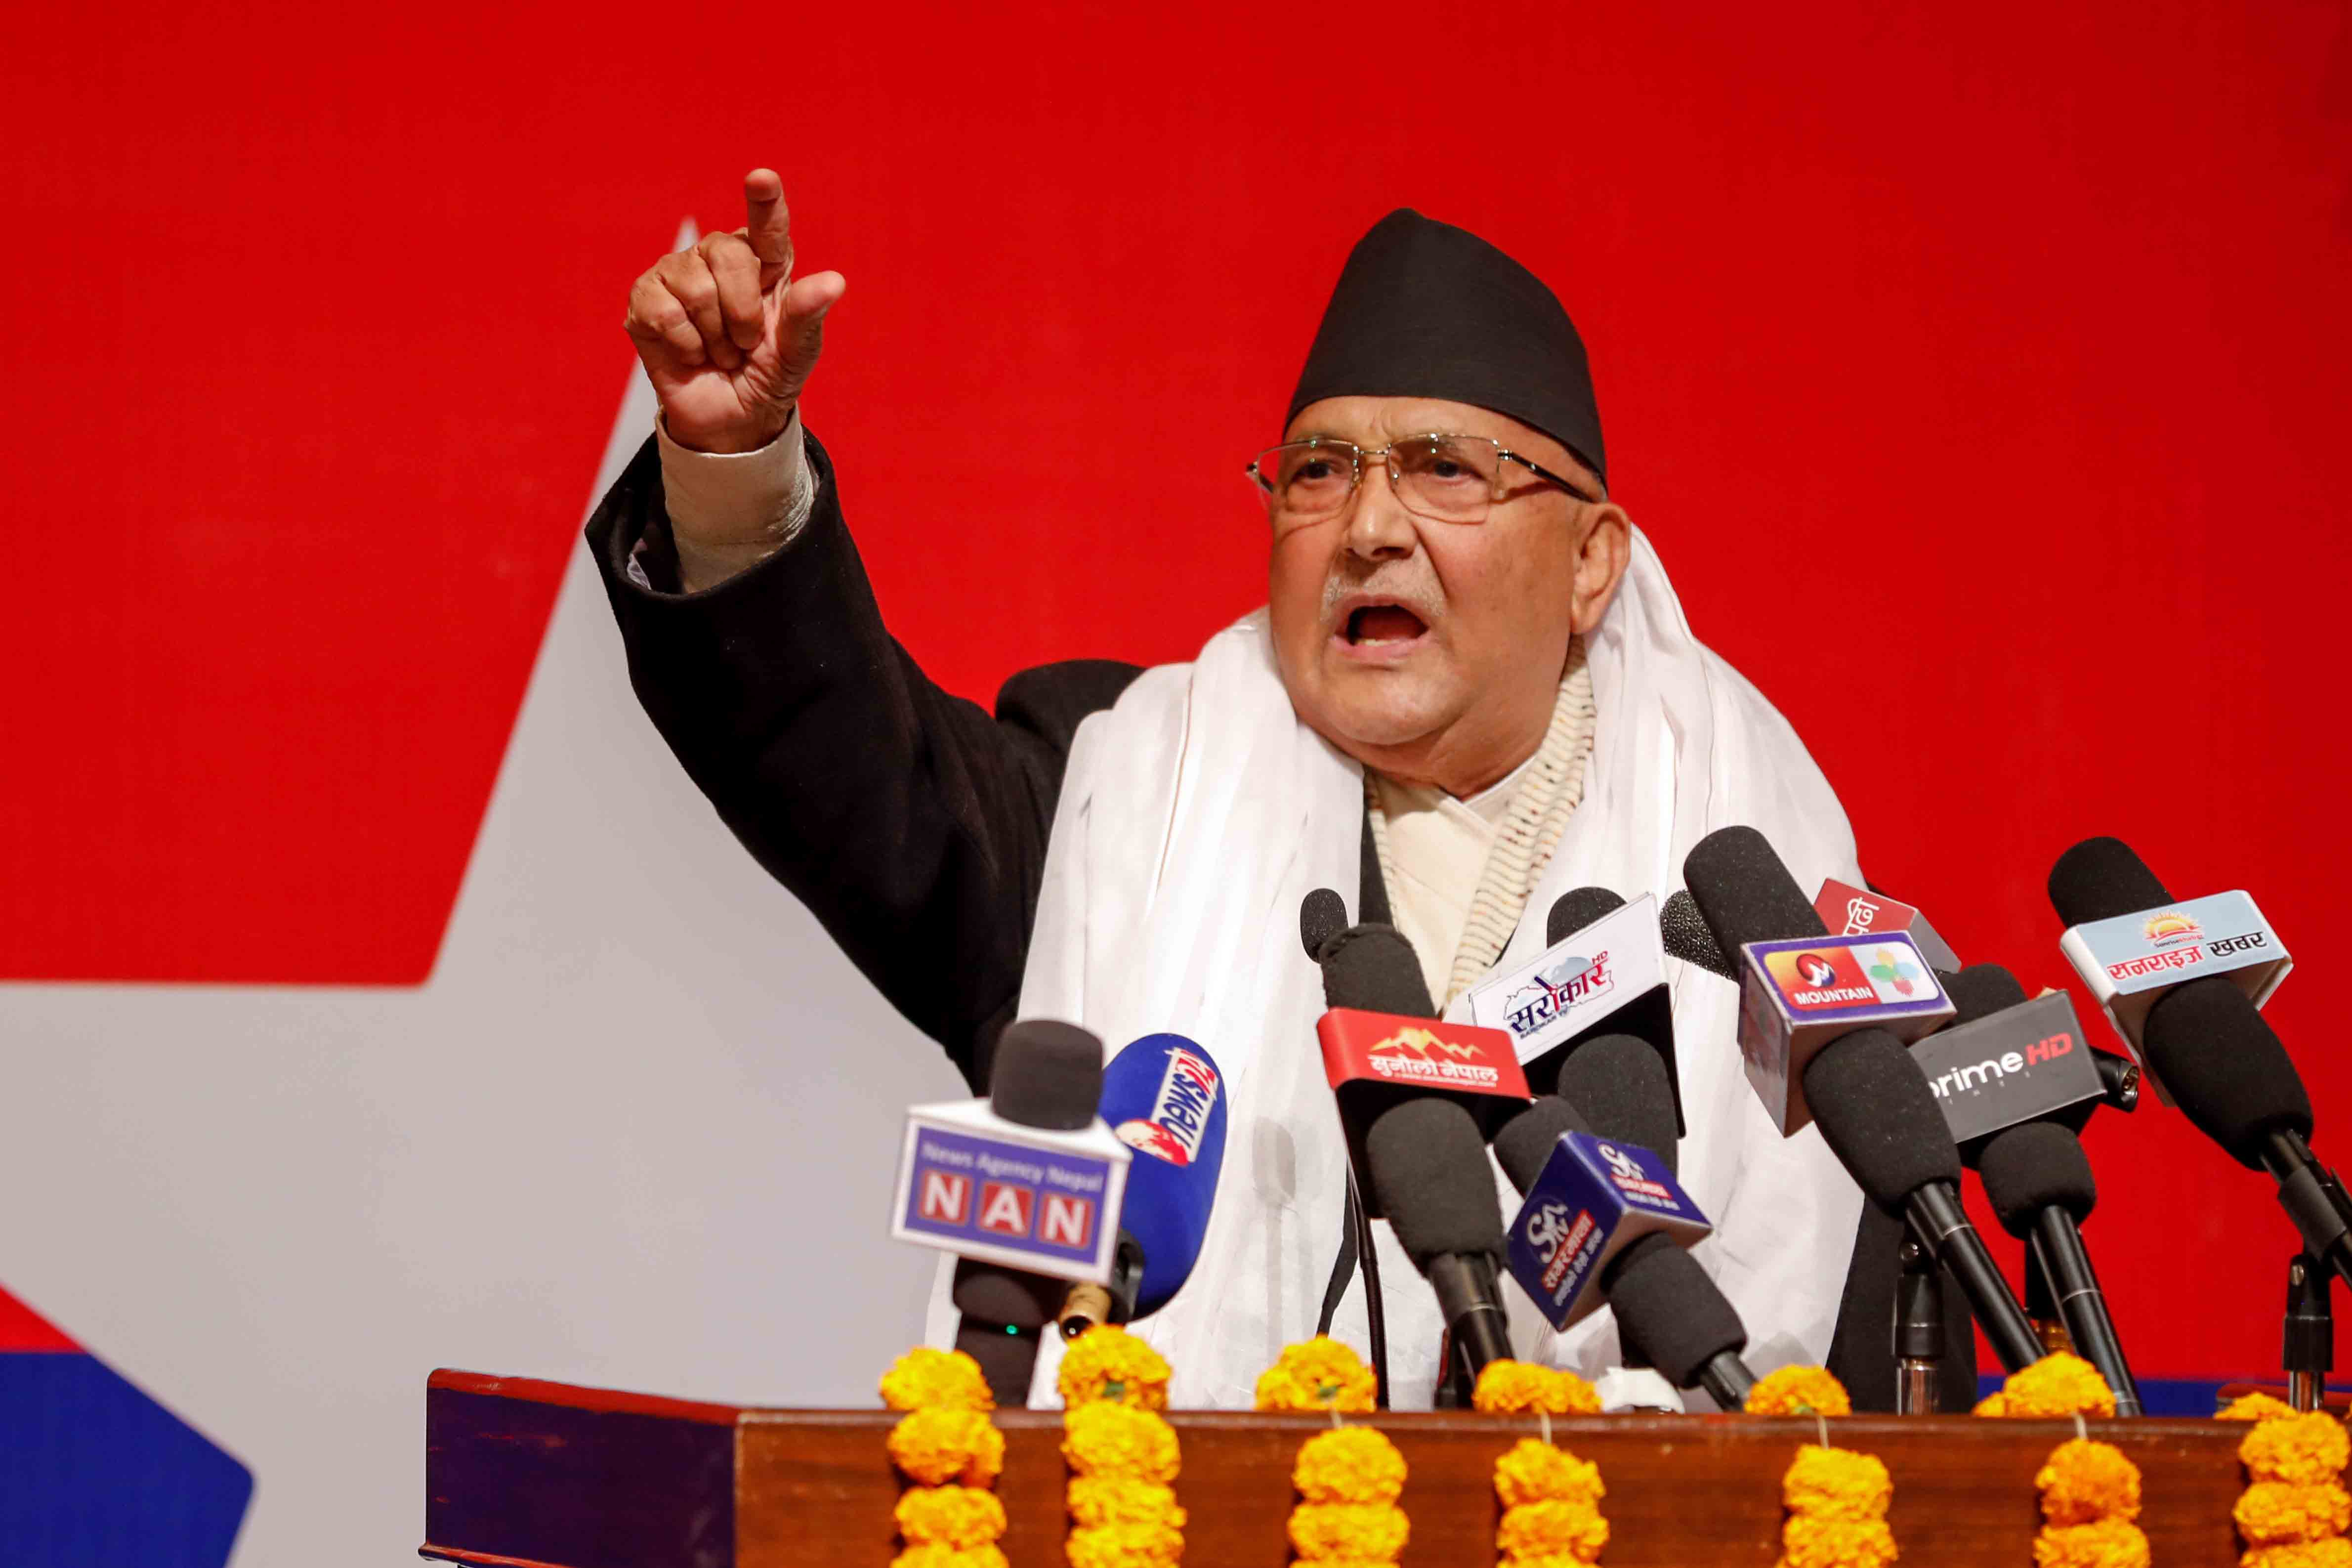 Prime Minister KP Sharma Oli addresses a gathering of Nepal Communist Party (NCP) cadres close to his faction, organised by the party's youth wing Rastriya Yuva Sangh Nepal, in the capital city, on Saturday, January 9, 2021. Photo Courtesy: Rajan Kafle/PM's Secretariat.